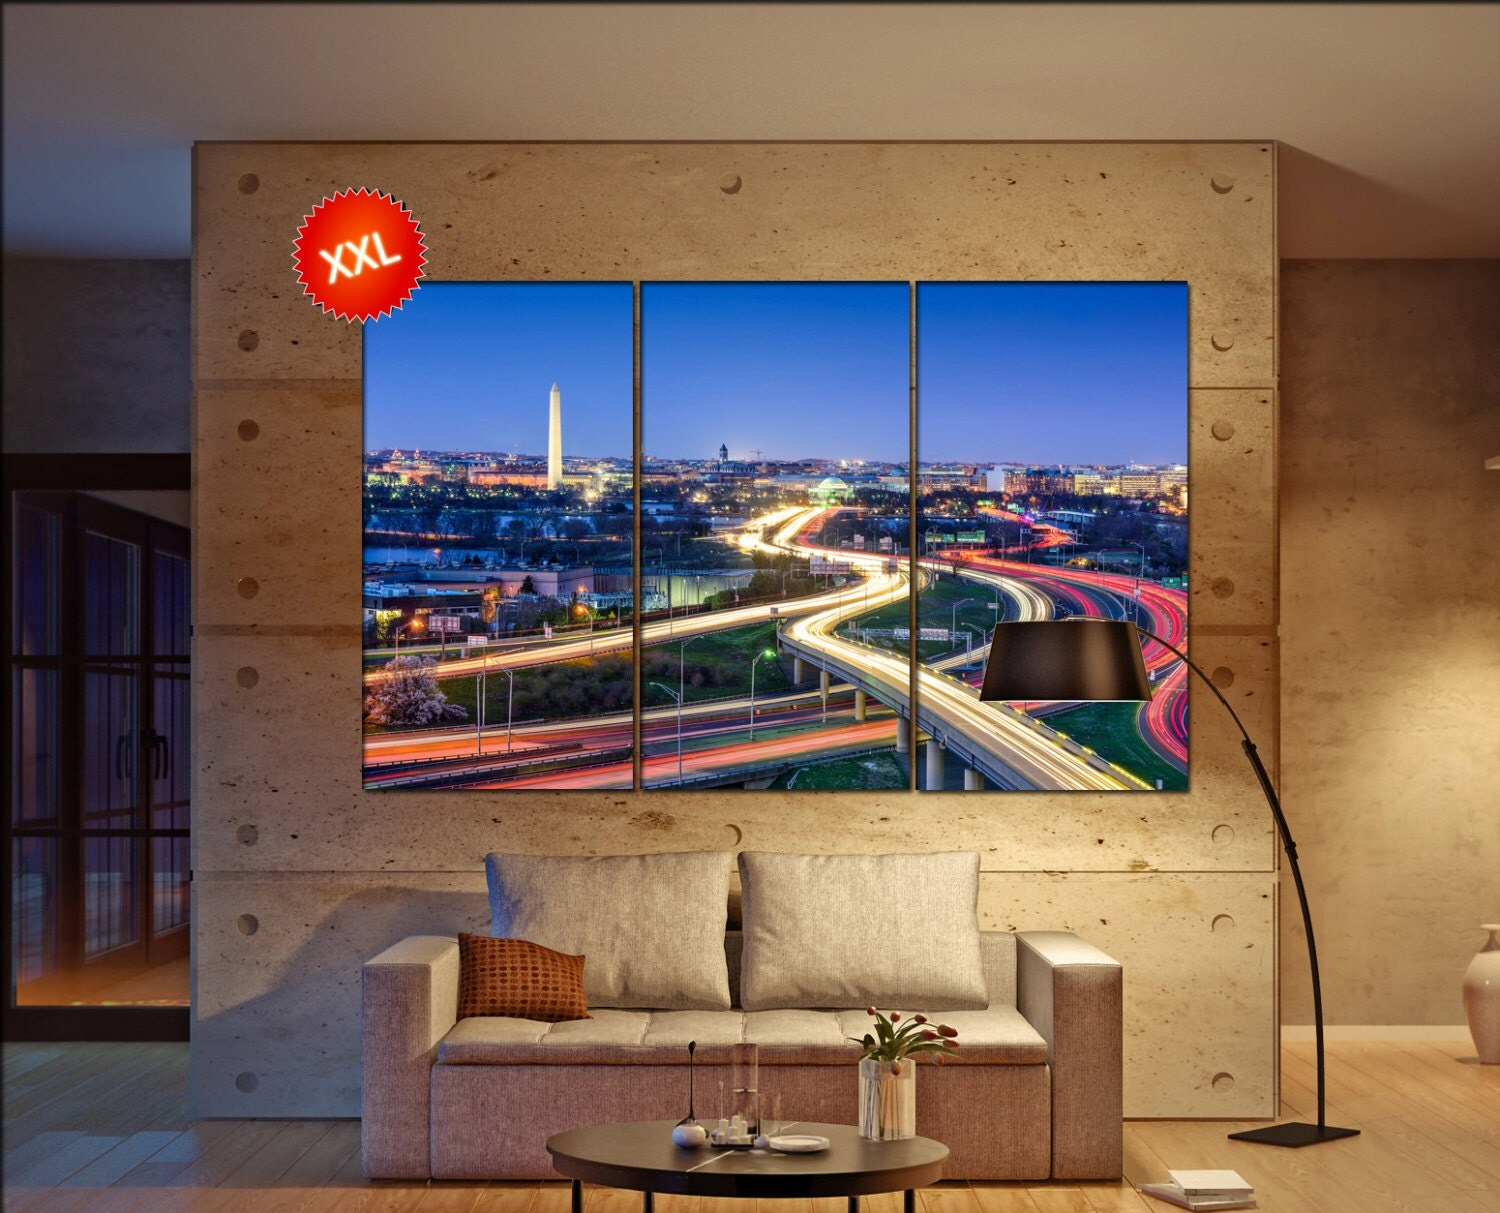 Washington Dc Wall Art washington d.c. skyline wall art print prints on canvas washington